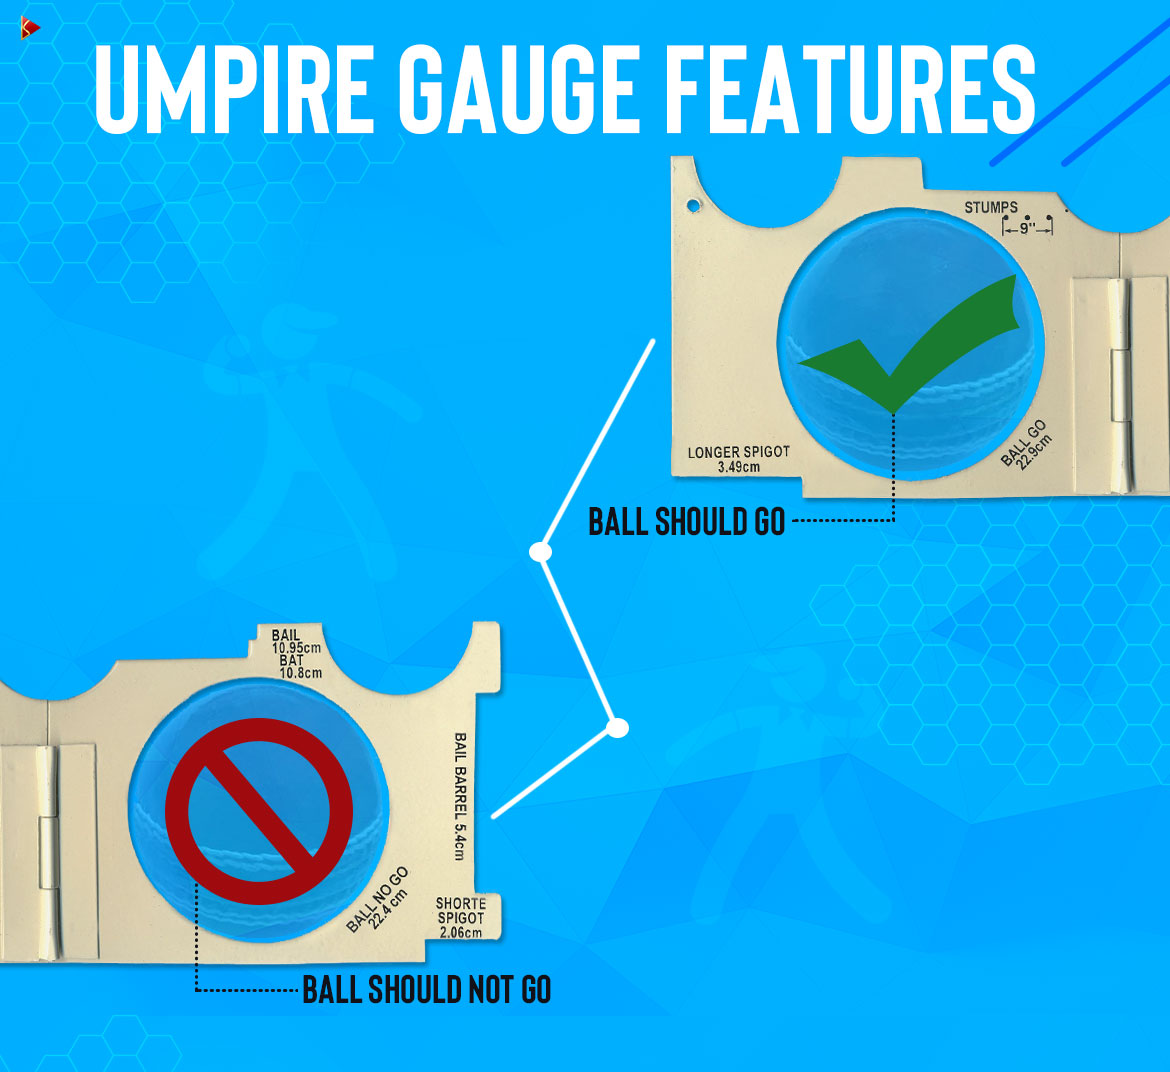 Umpire Gauge Features